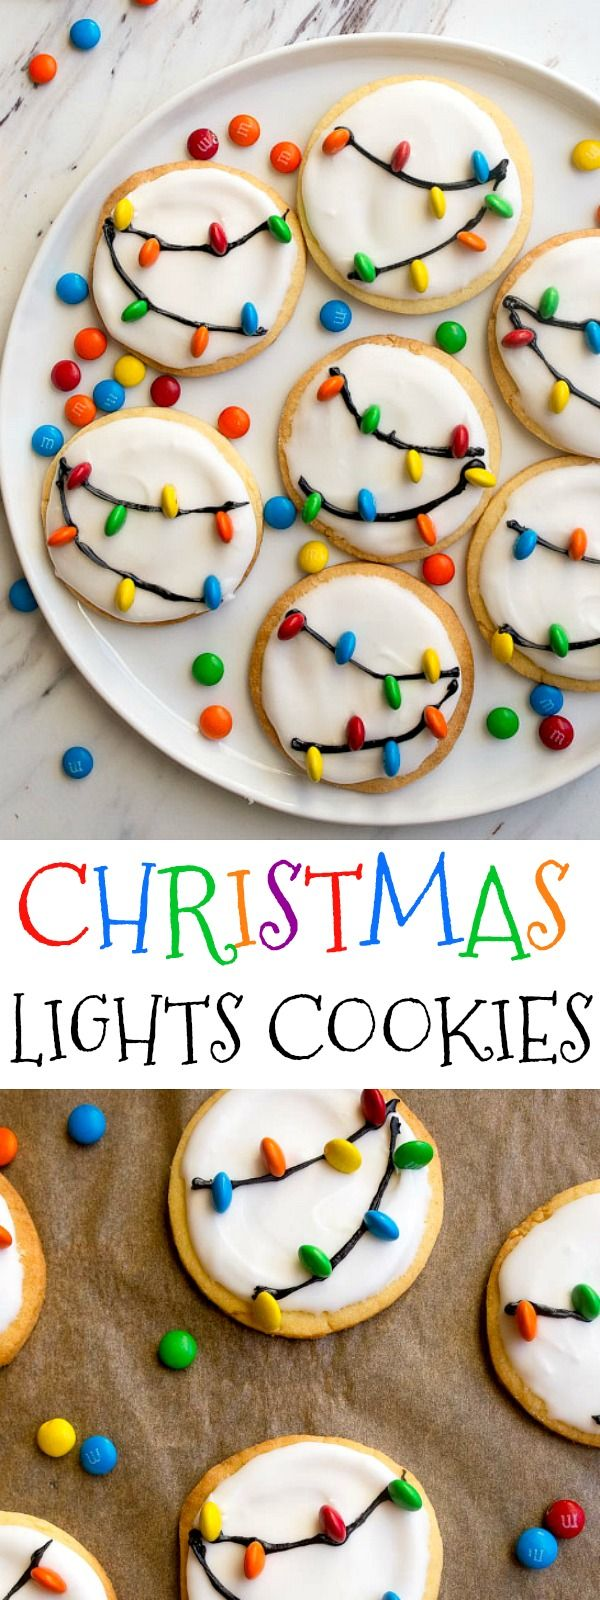 Christmas Lights Cookies for Santa